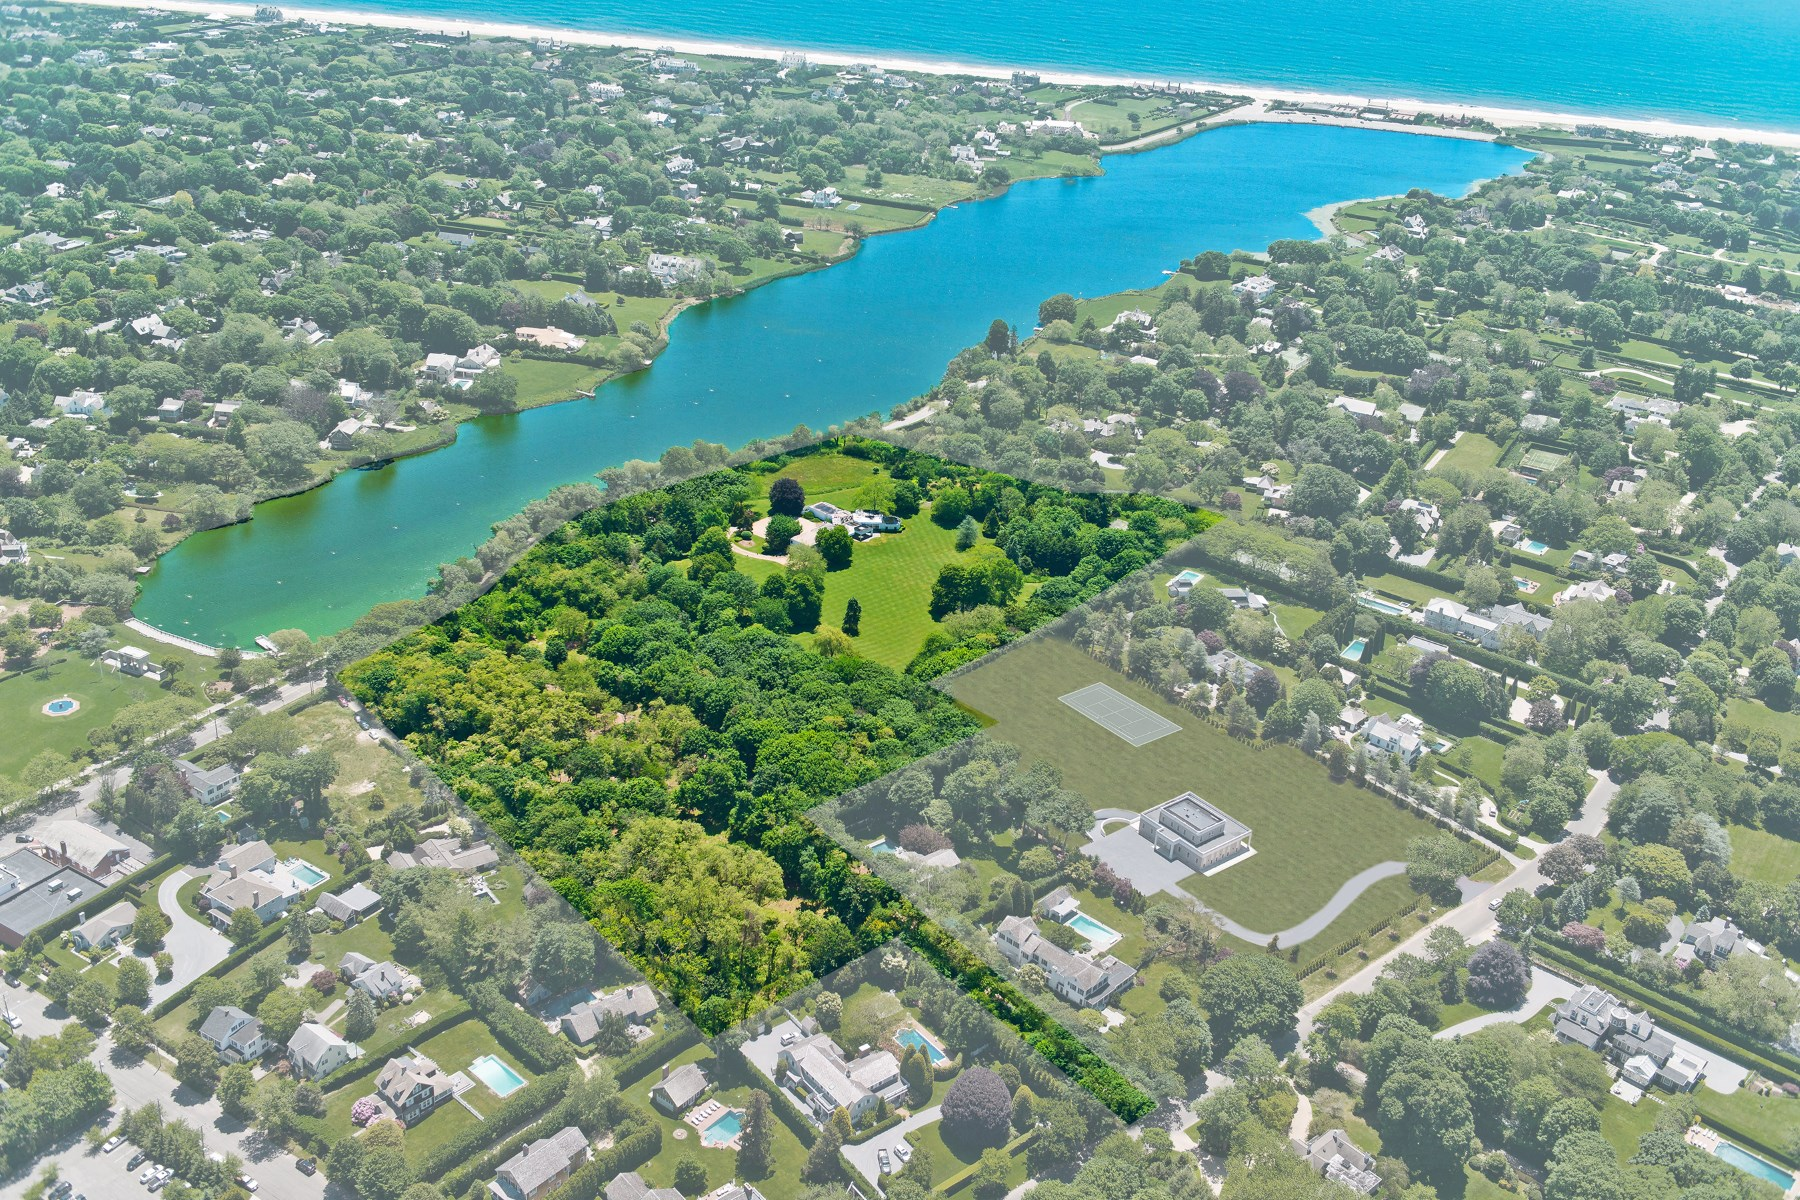 Vivienda unifamiliar por un Venta en Overlooking Lake Agawam 111, 137, 153 Pond Lane & 52 First Neck Lane 4 properties combined Southampton, Nueva York 11968 Estados Unidos